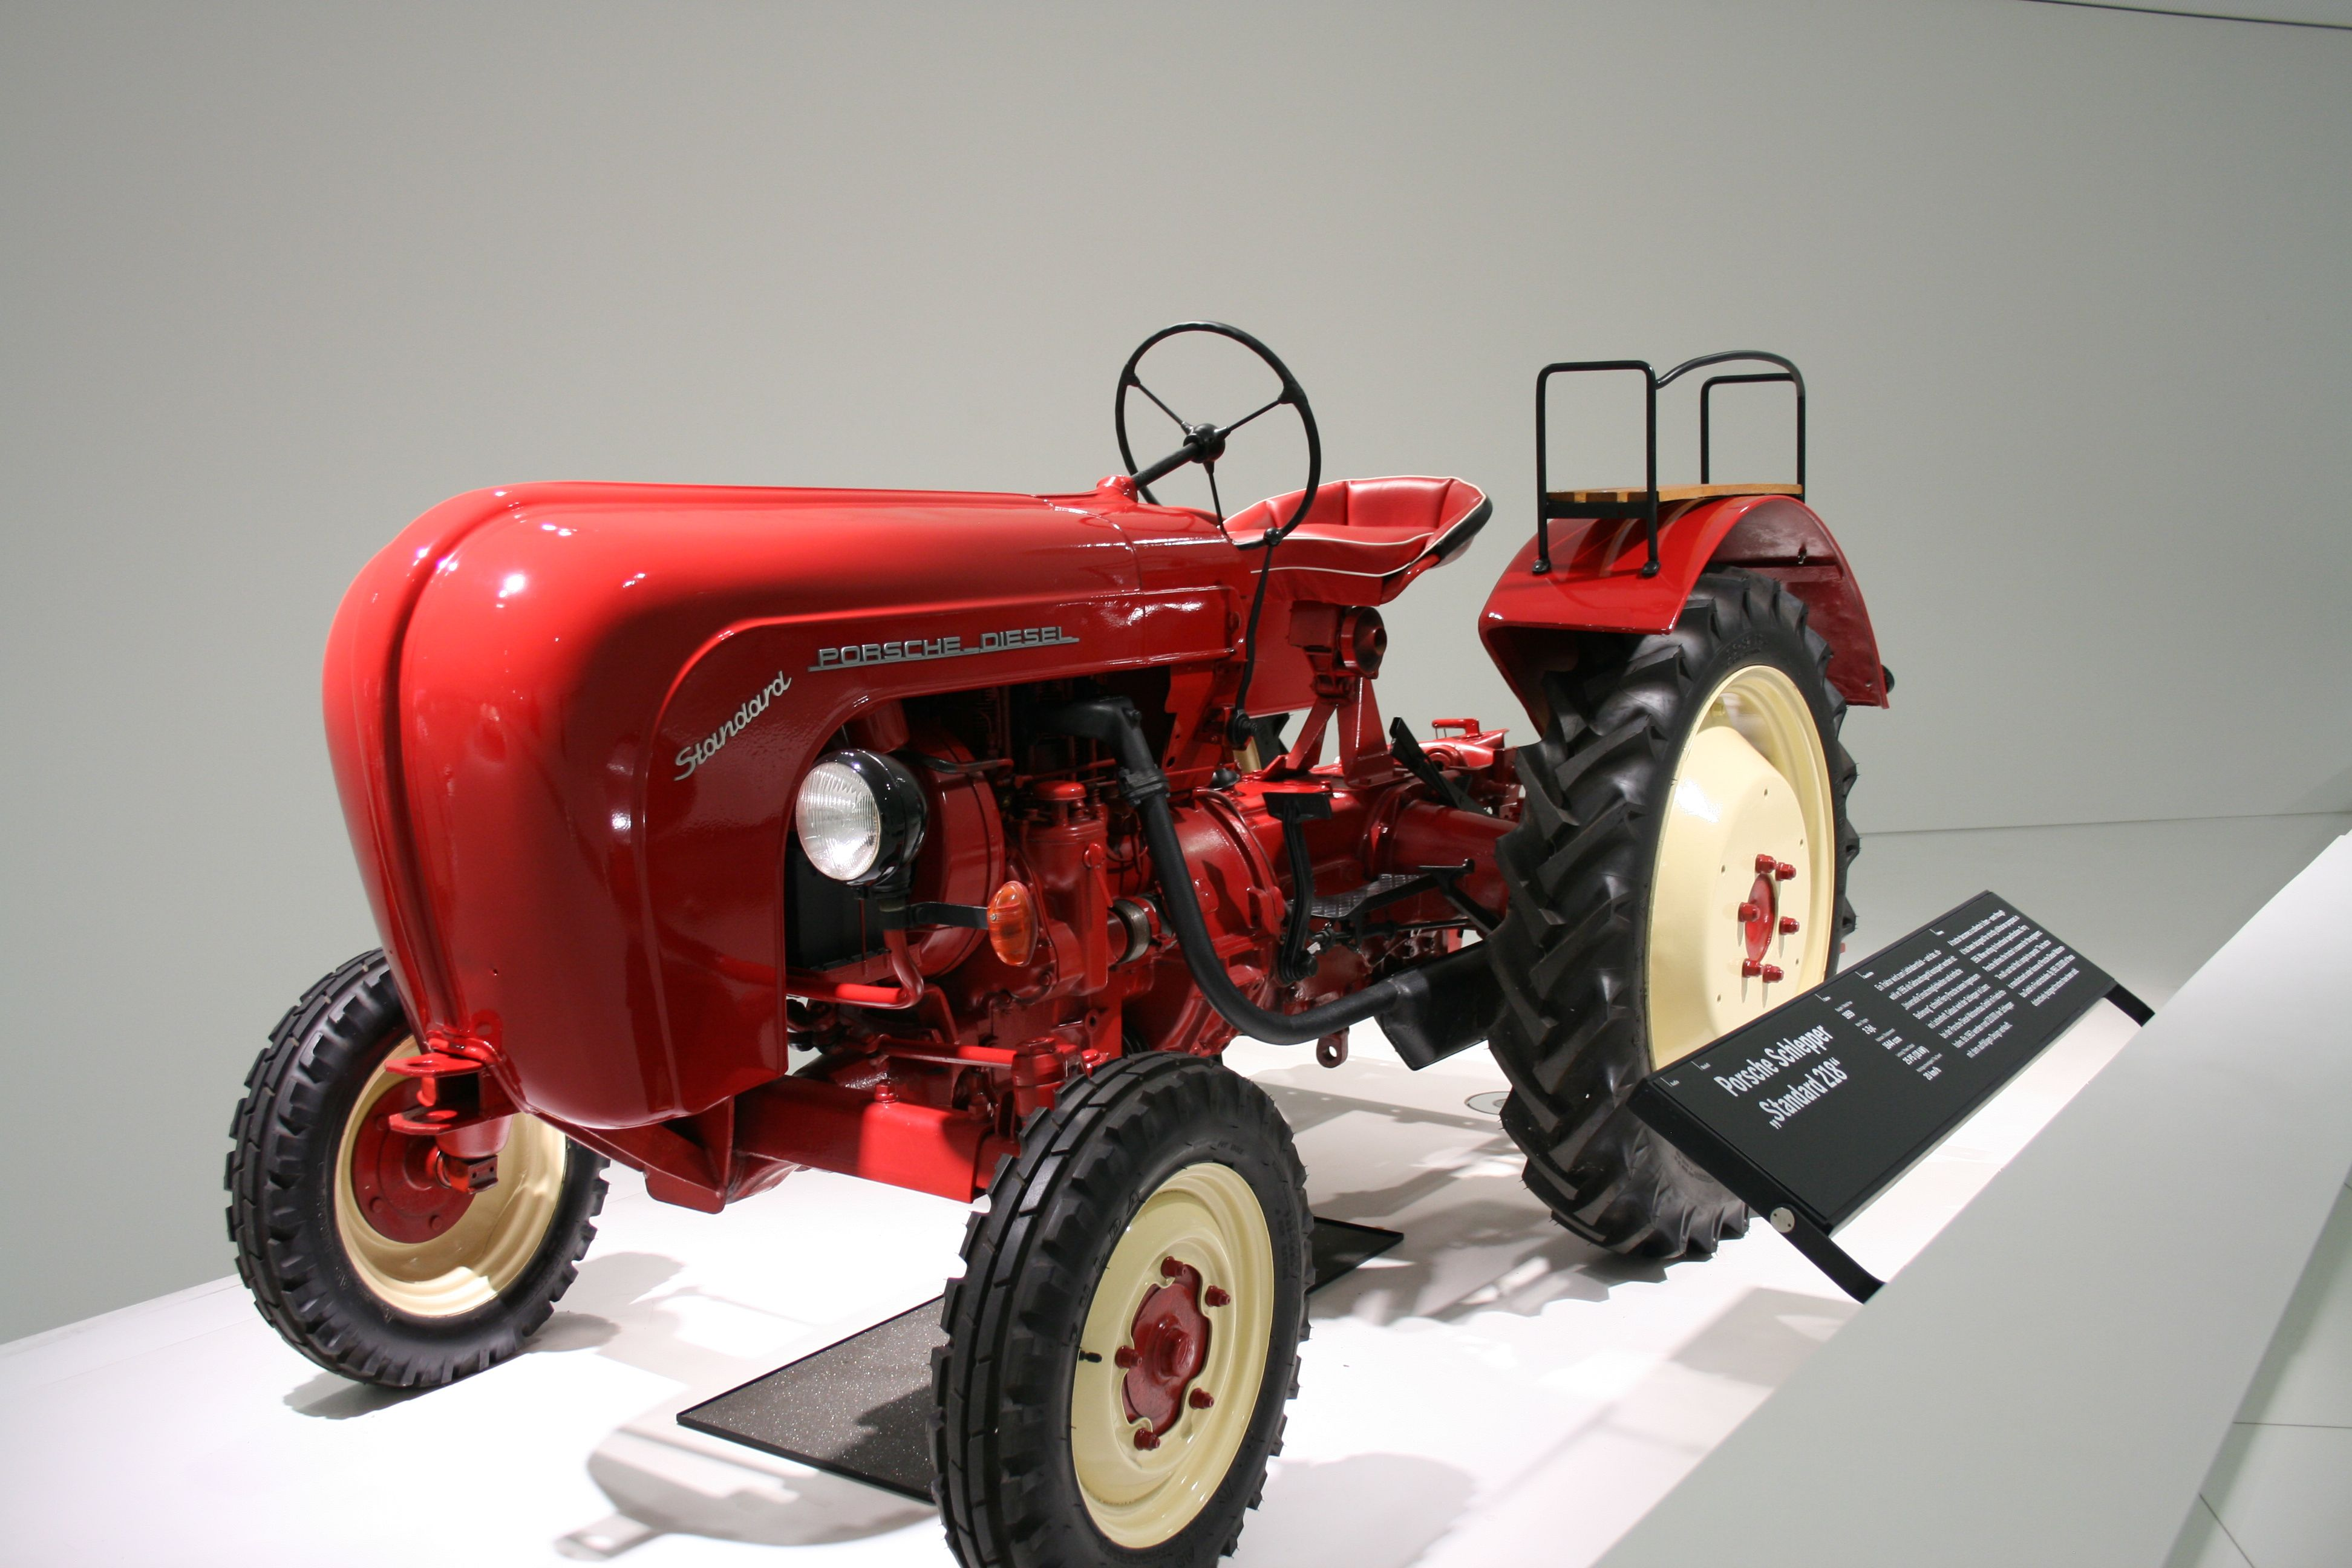 Yes Porsche Once Built A Tractor This One Was Made In 1959 Inside The Porsche Museum Stuttgart Germany Stuttgart Germany Tractors